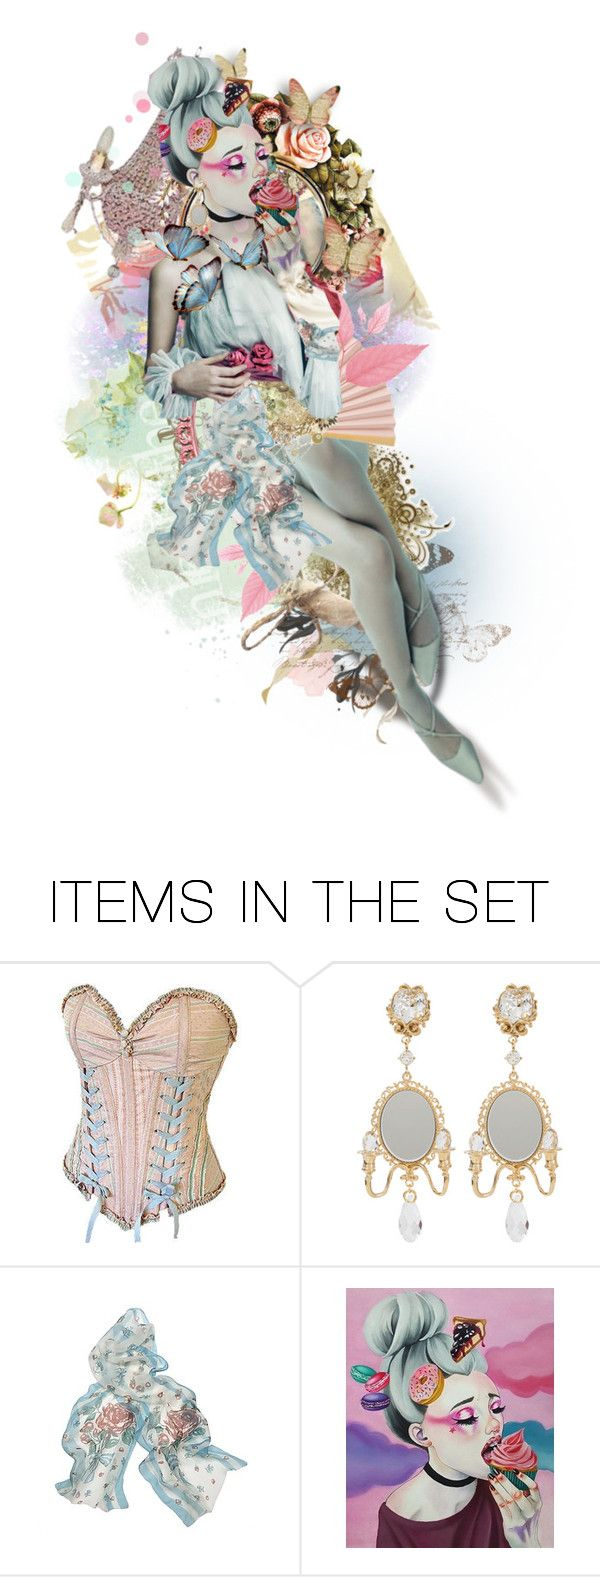 """Marie"" by felicia-mcdonnell ❤ liked on Polyvore featuring art, MarieAntoinette and polyvoreeditorial"